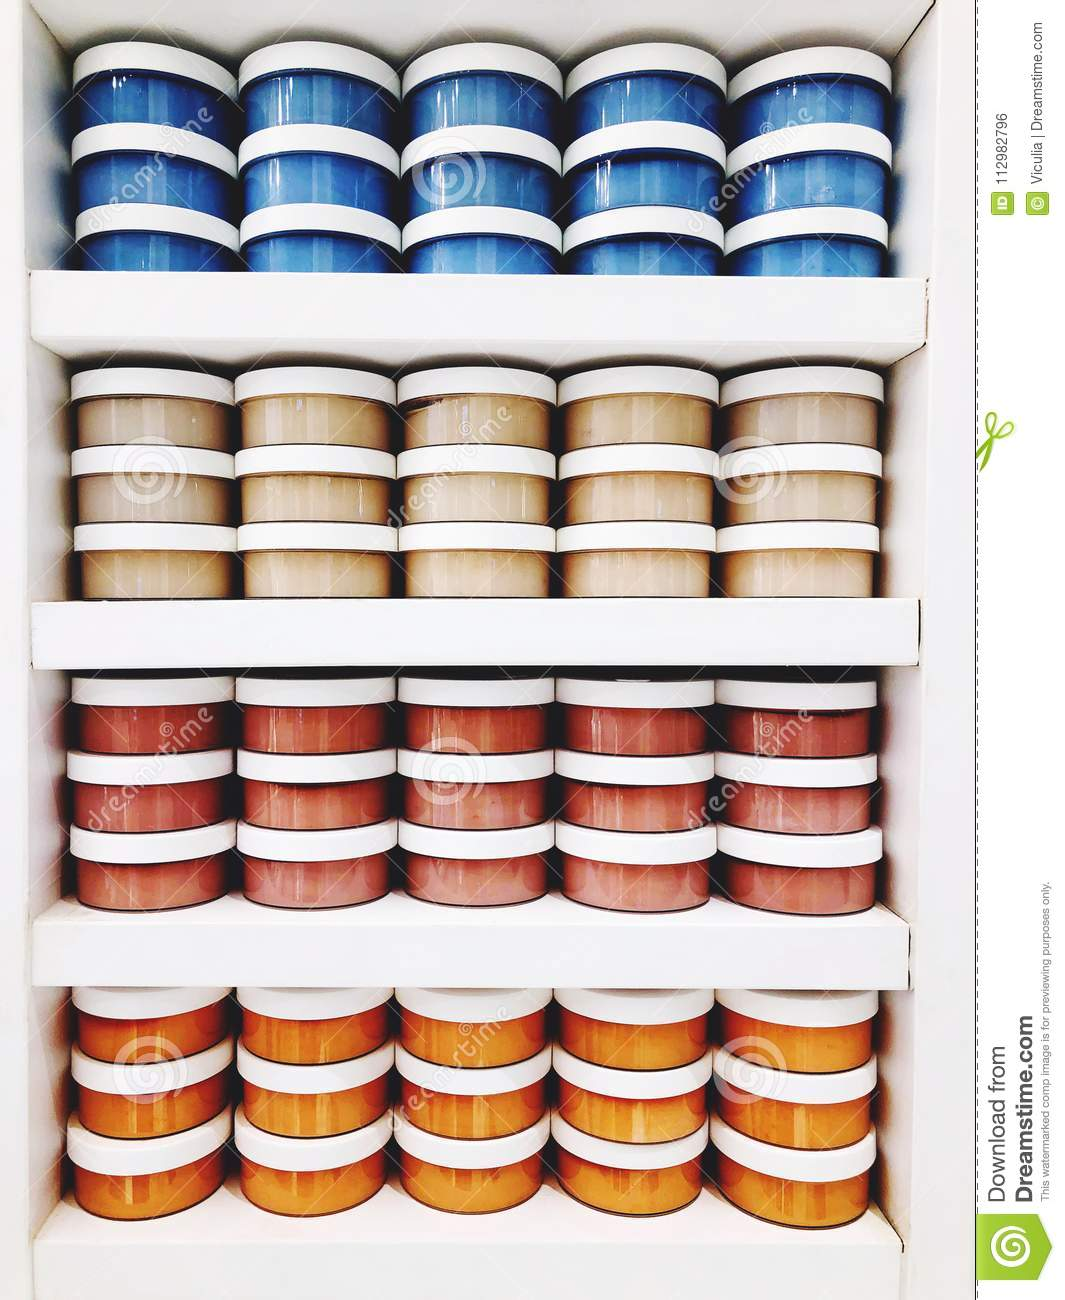 Containers with body scrub on the shelves in the store